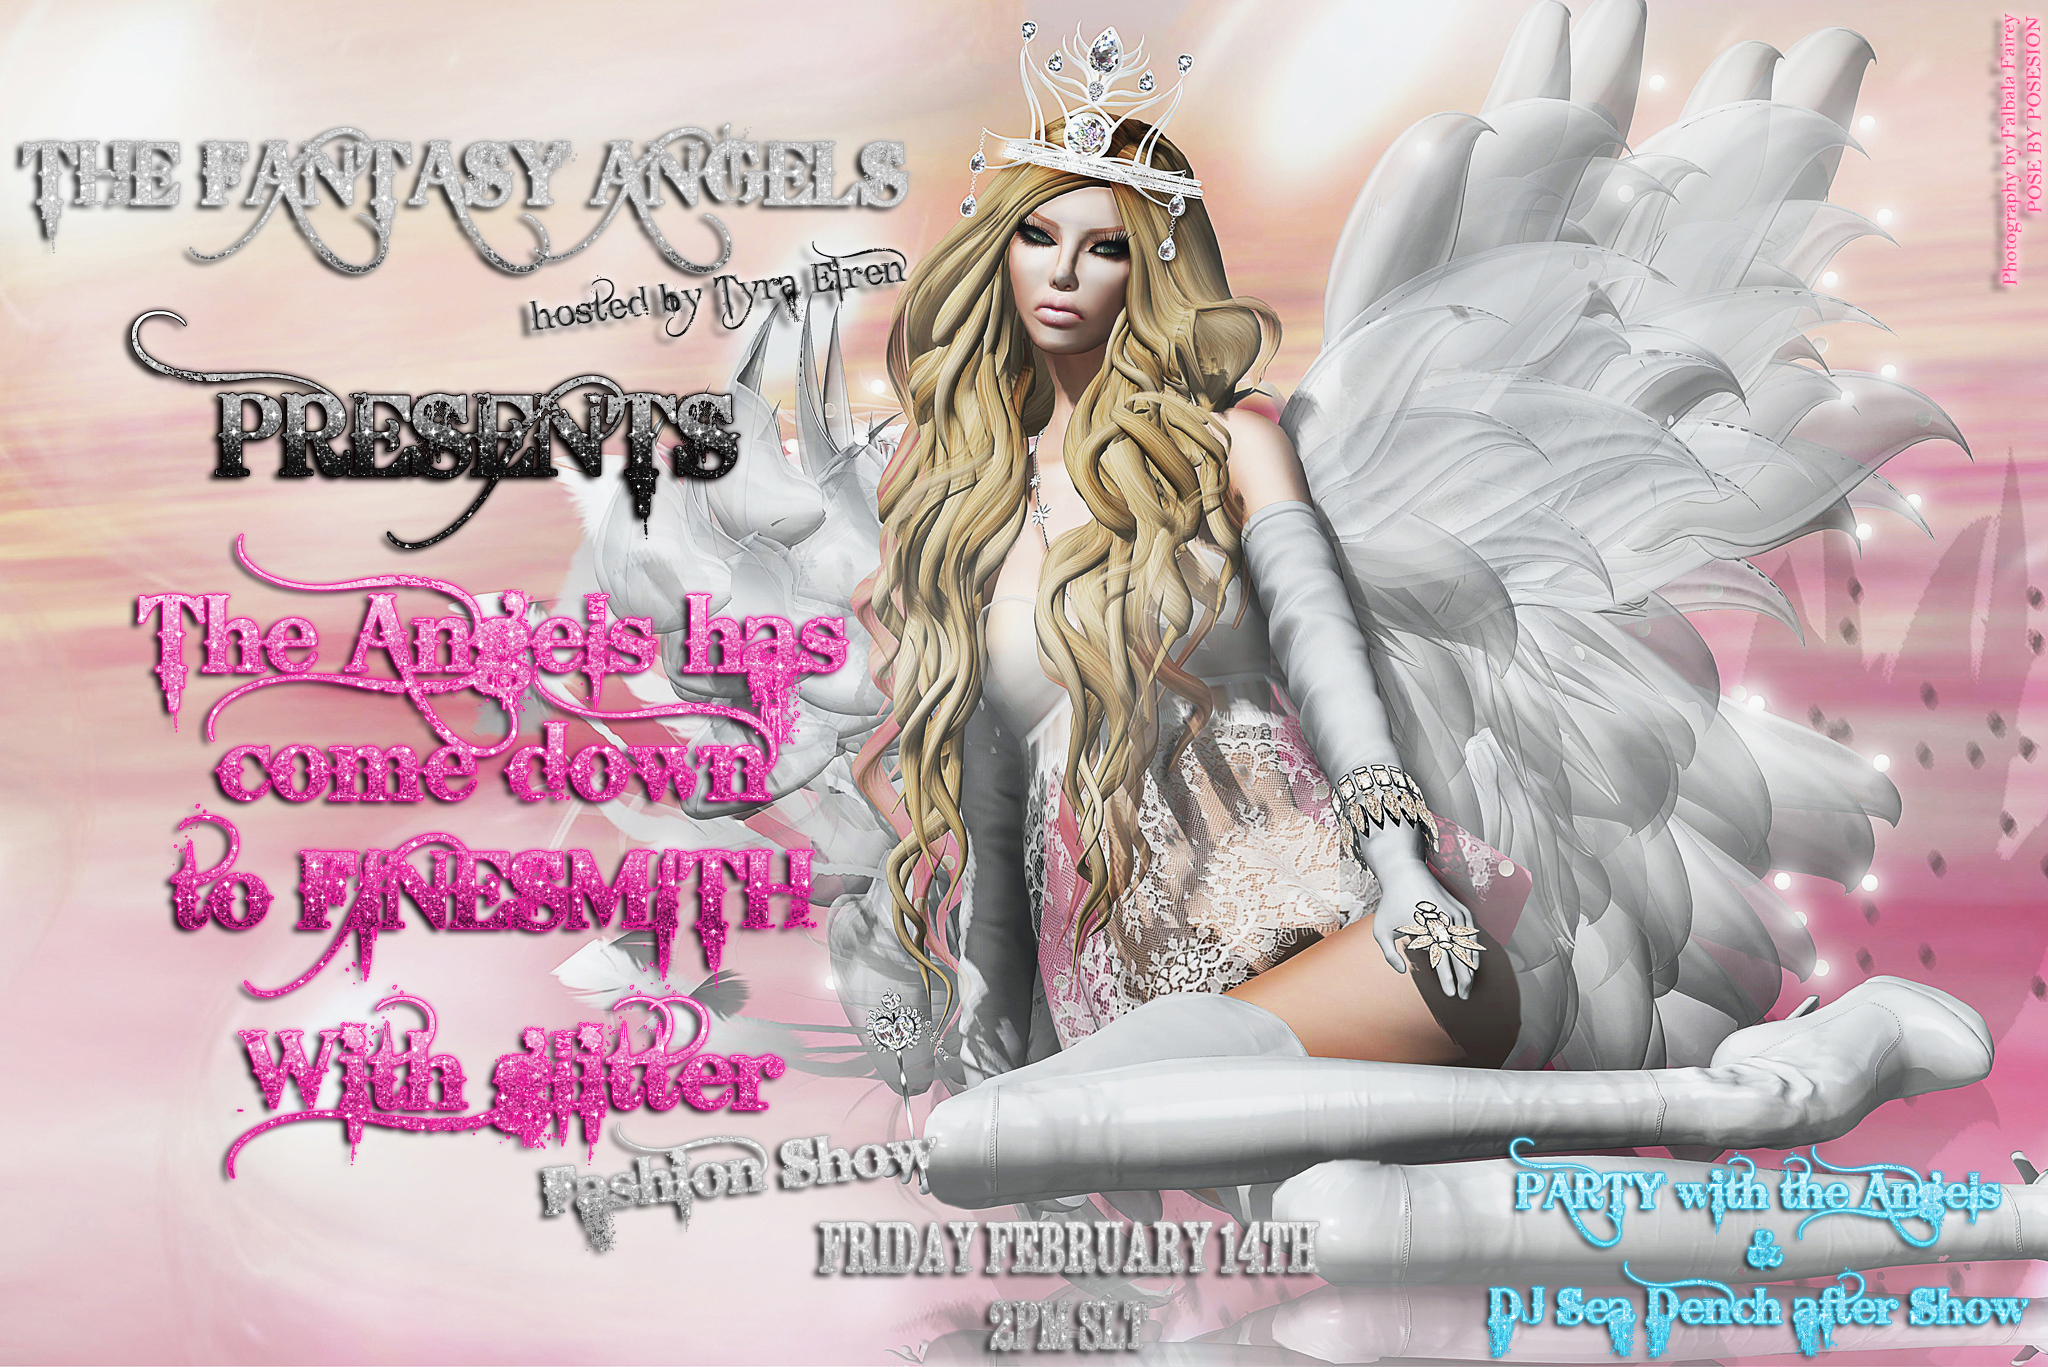 """SOON AT THE ANGELS HAS COME DOWN TO FINESMITH WITH GLITTER FASHION SHOW"" -  February 14th at 2 pm SLT !!!"